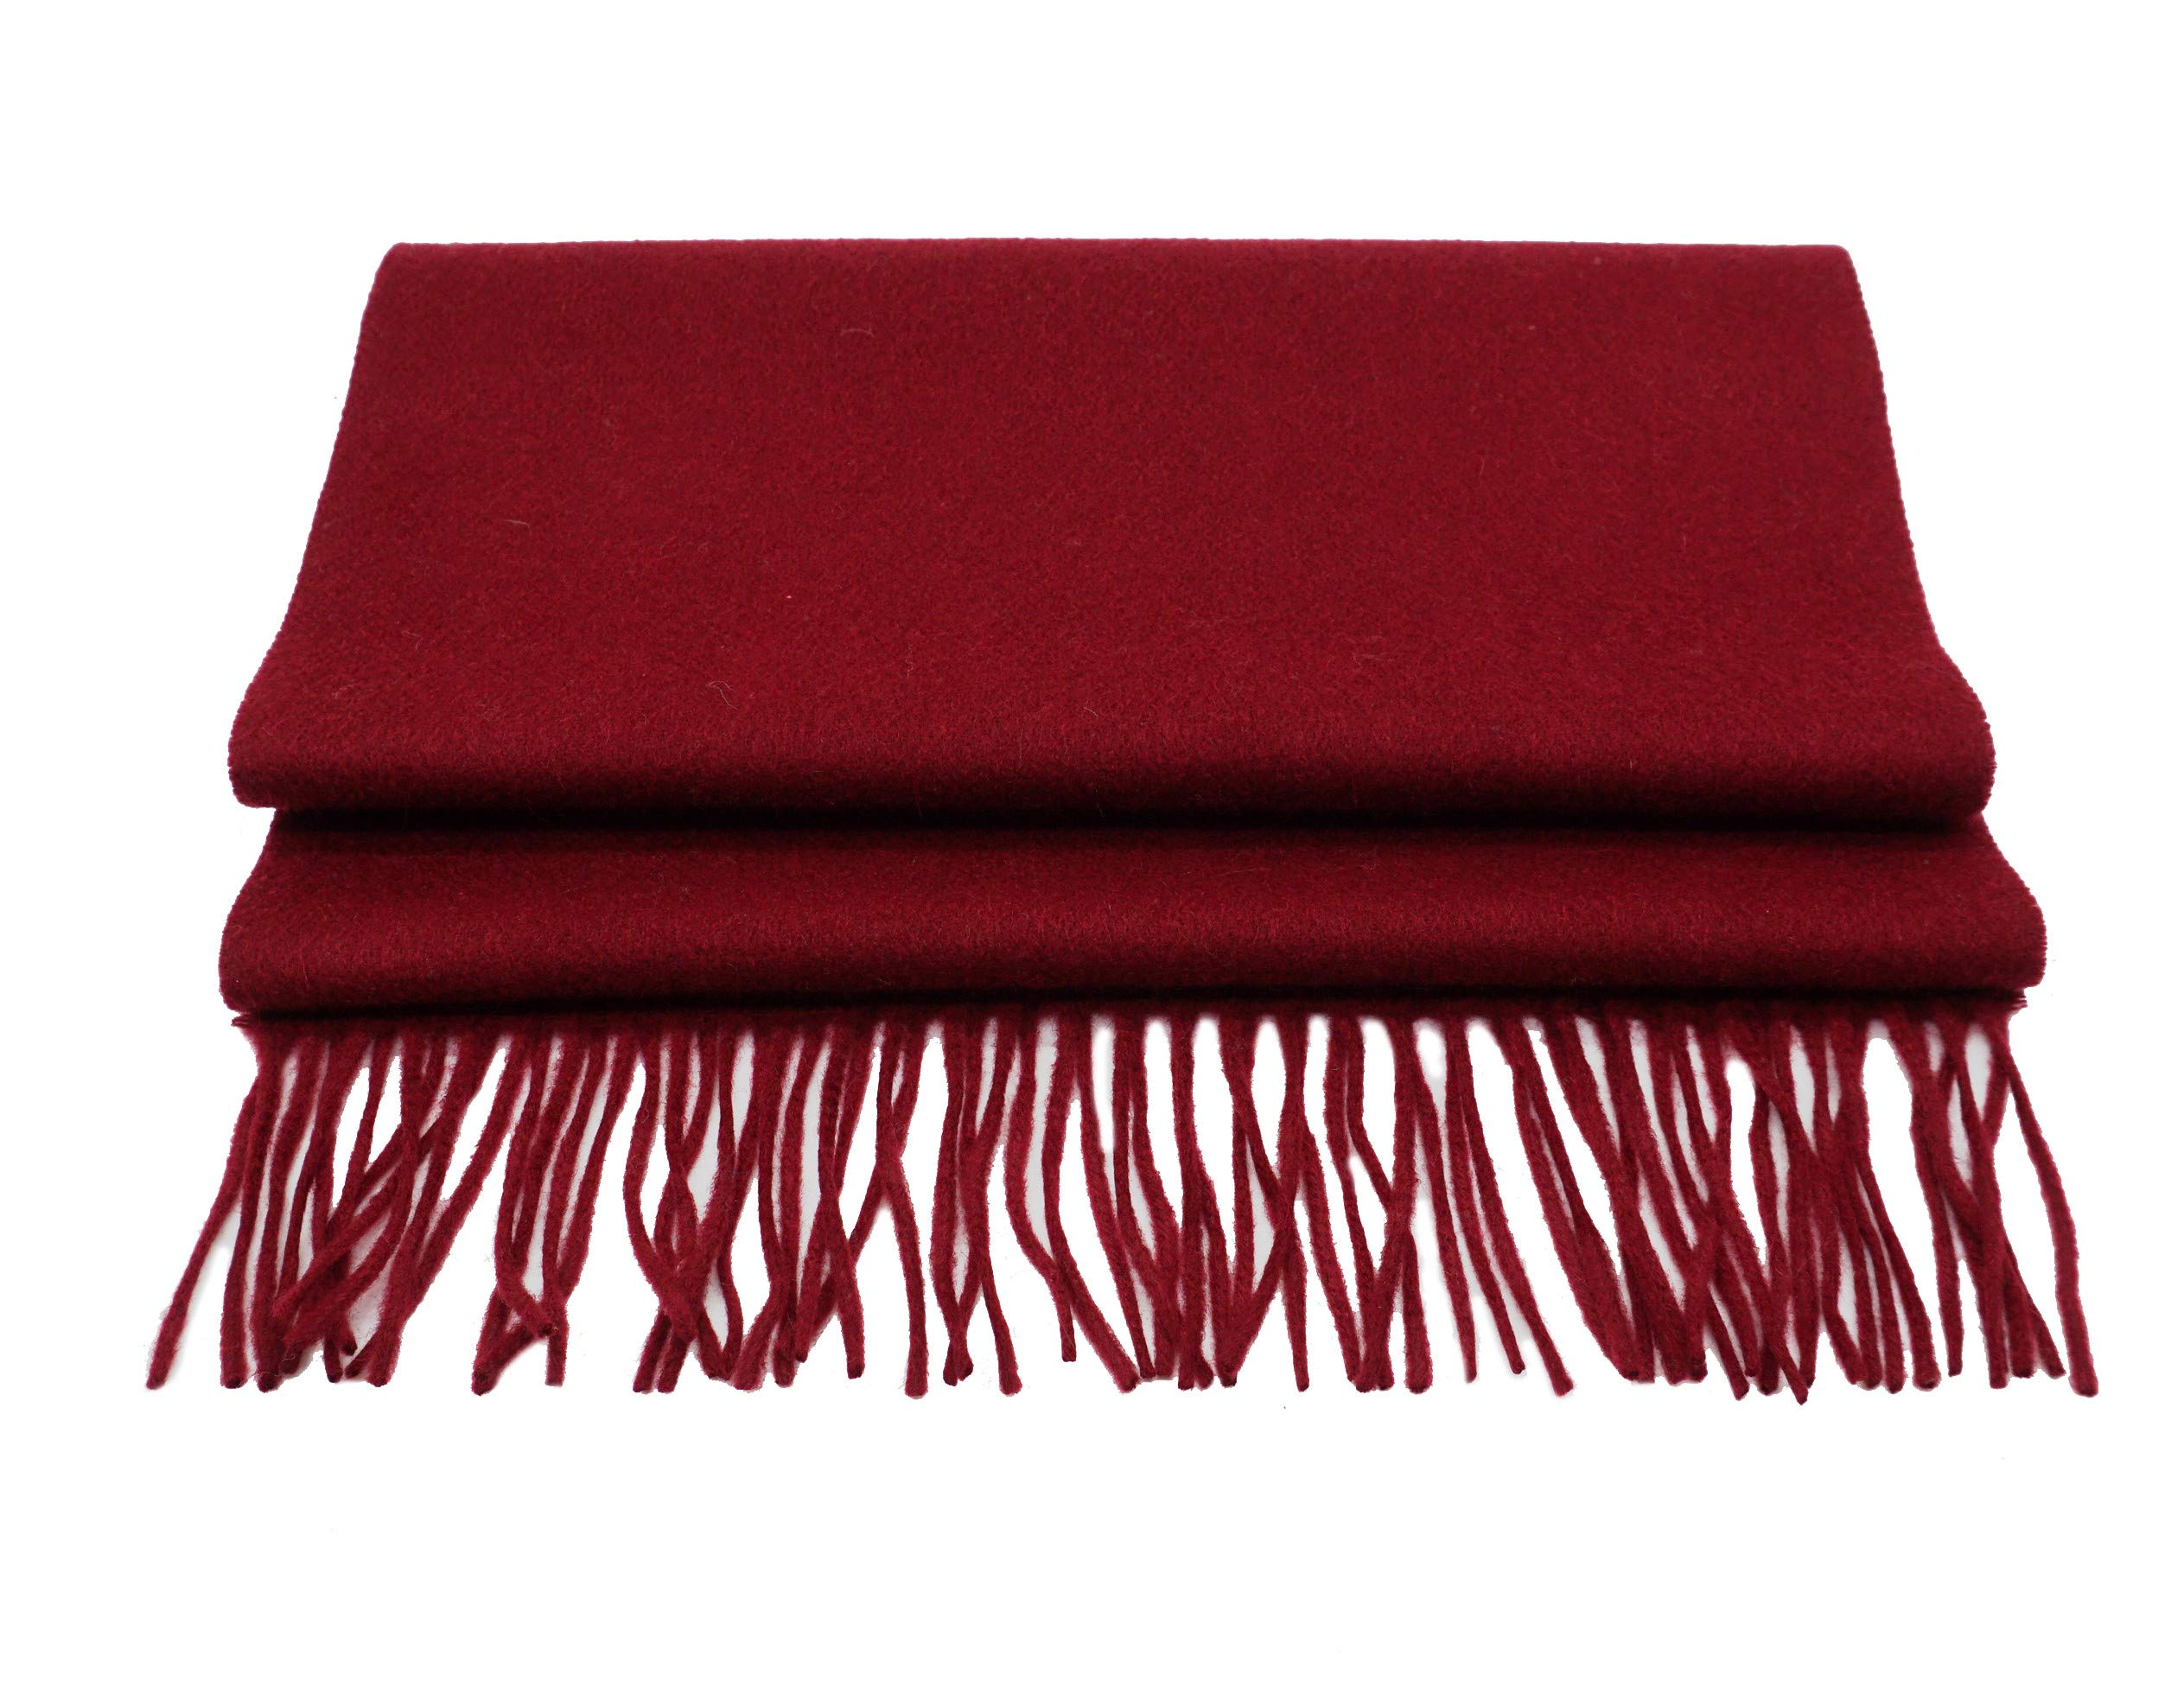 State Cashmere Unisex Solid Color Fringe Scarf 100% Pure Cashmere Waterweave Knit (Burgundy) by State Cashmere